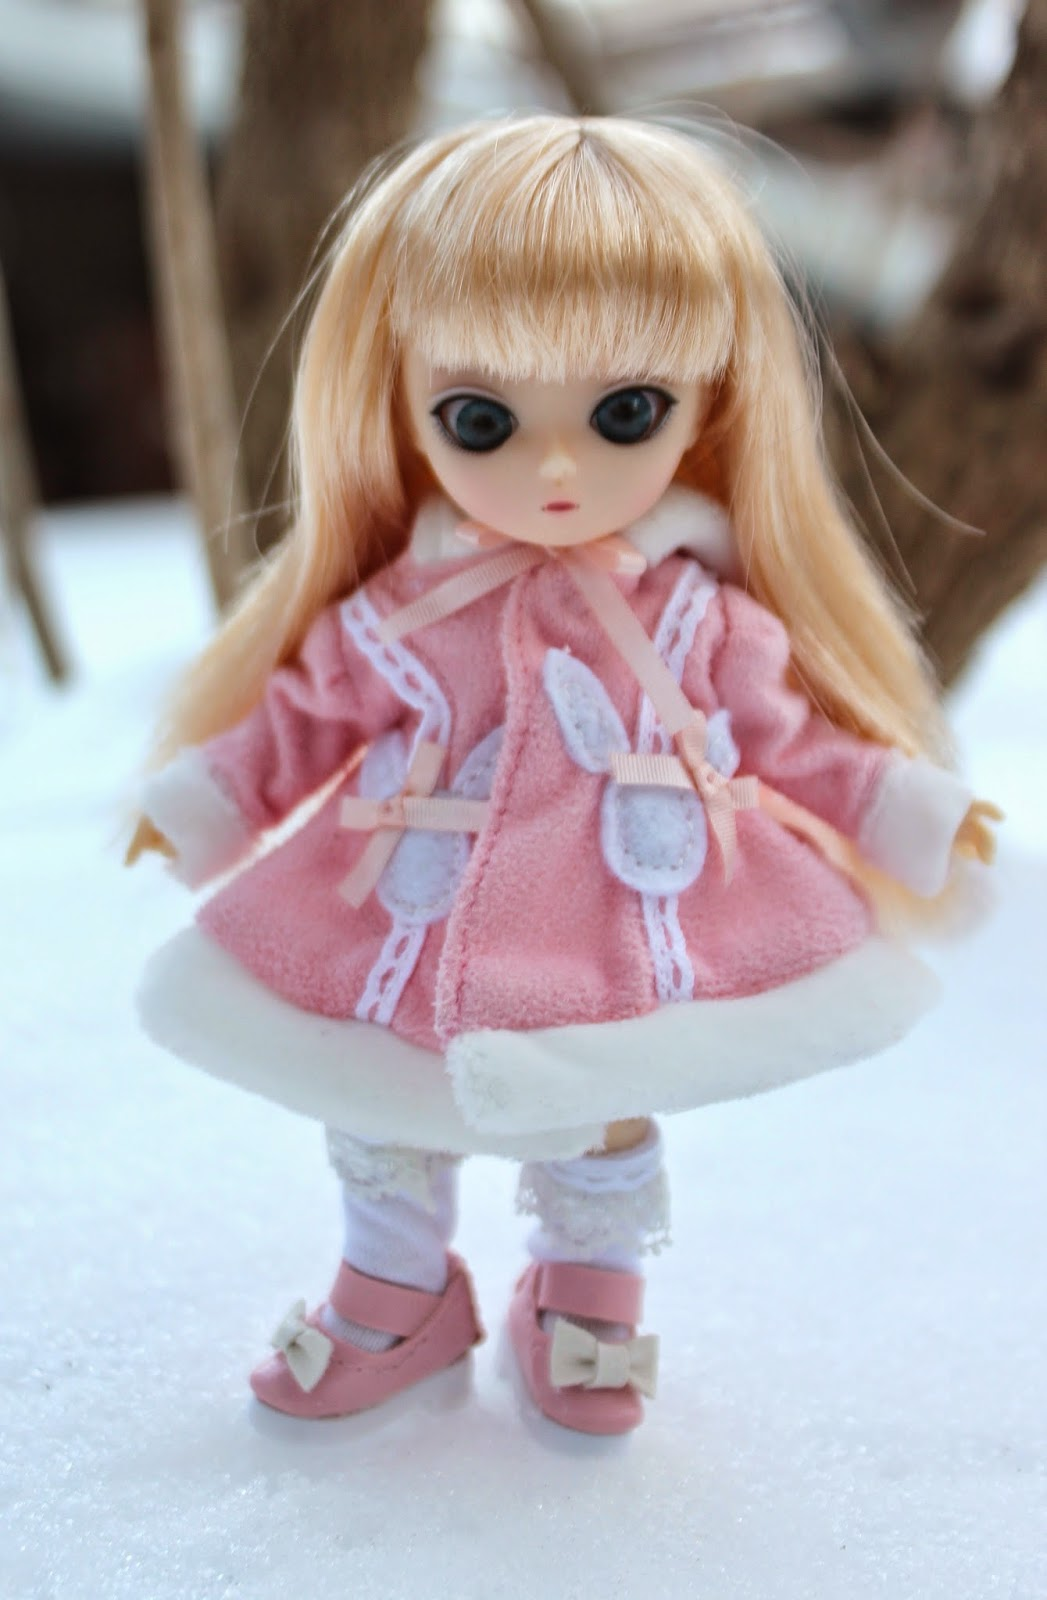 The Dolls Between Us: PLANET OF THE DOLLS: Ai Ball Jointed Doll Lagrus Mini Review